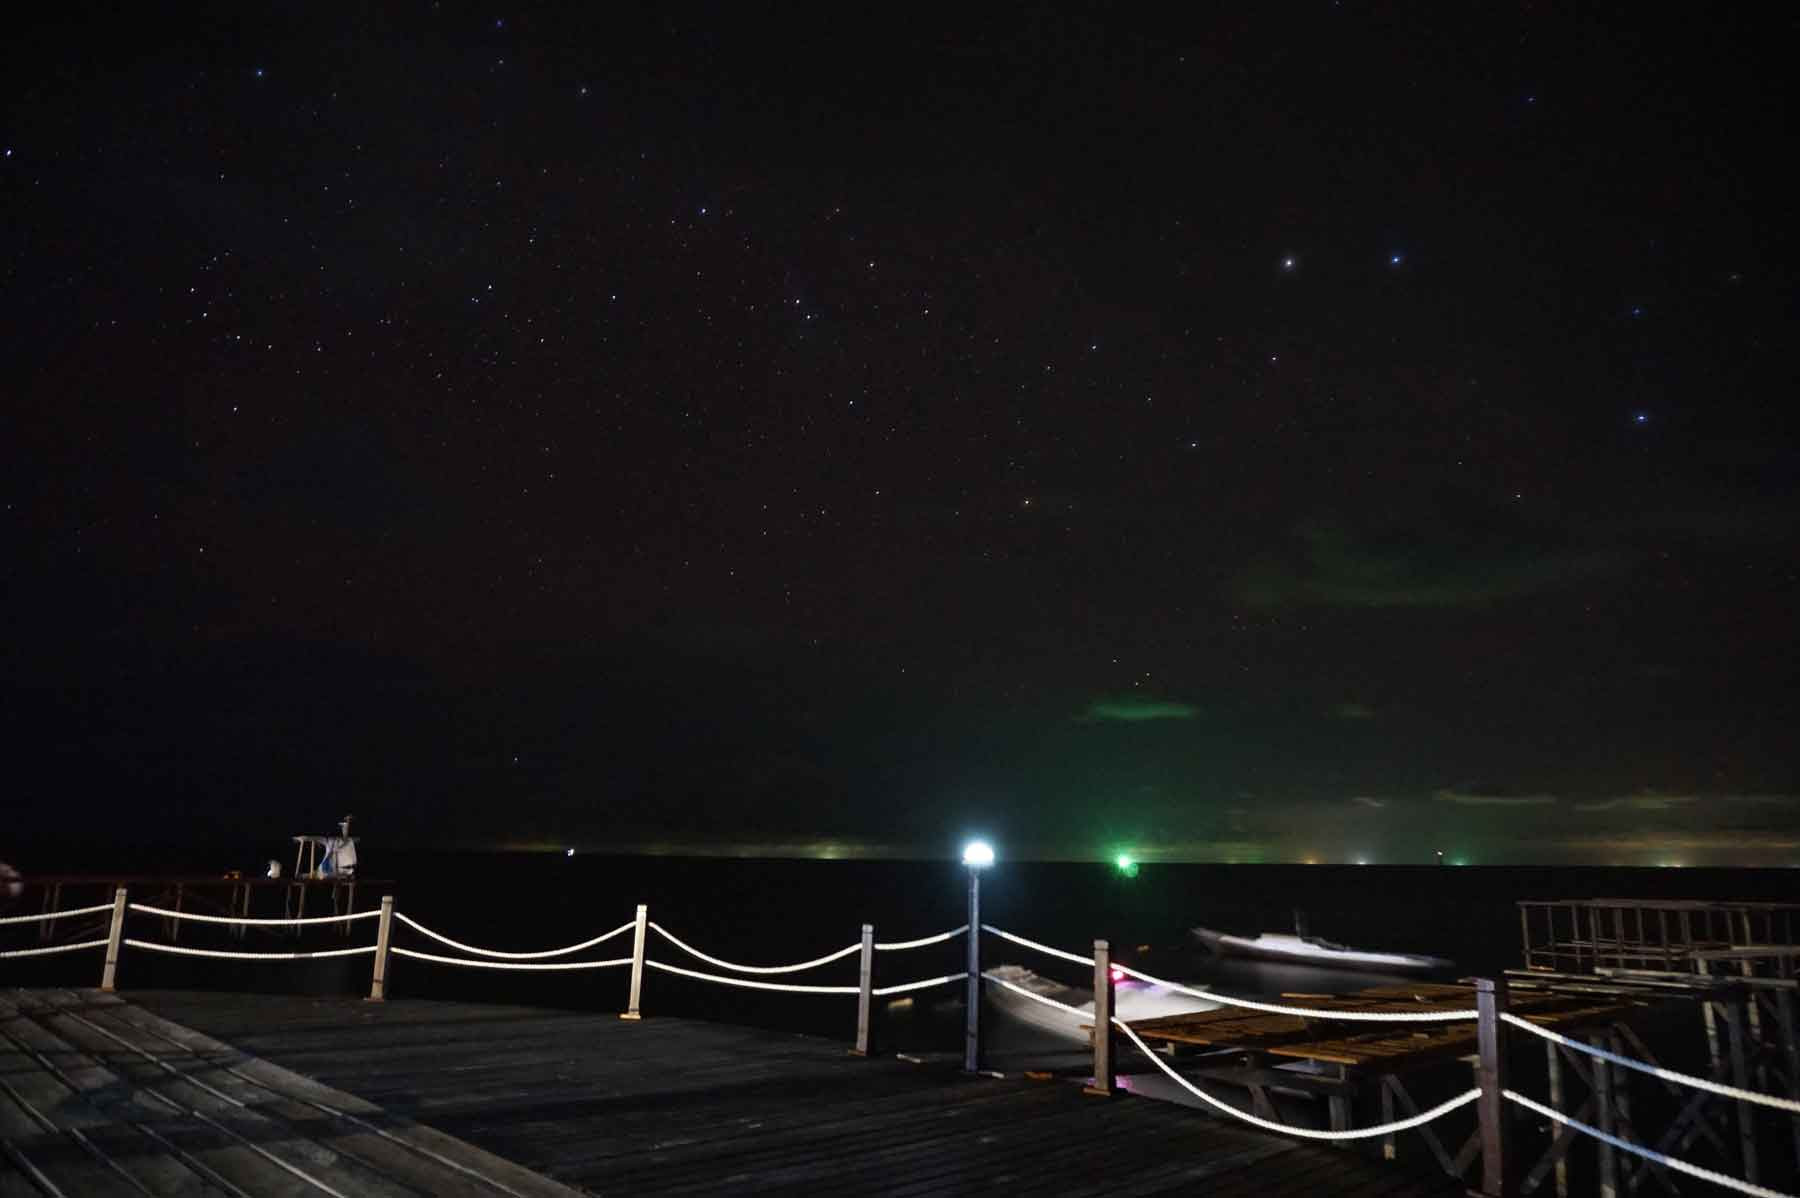 Milky Way di Depan Dermaga Derawan Fisheries